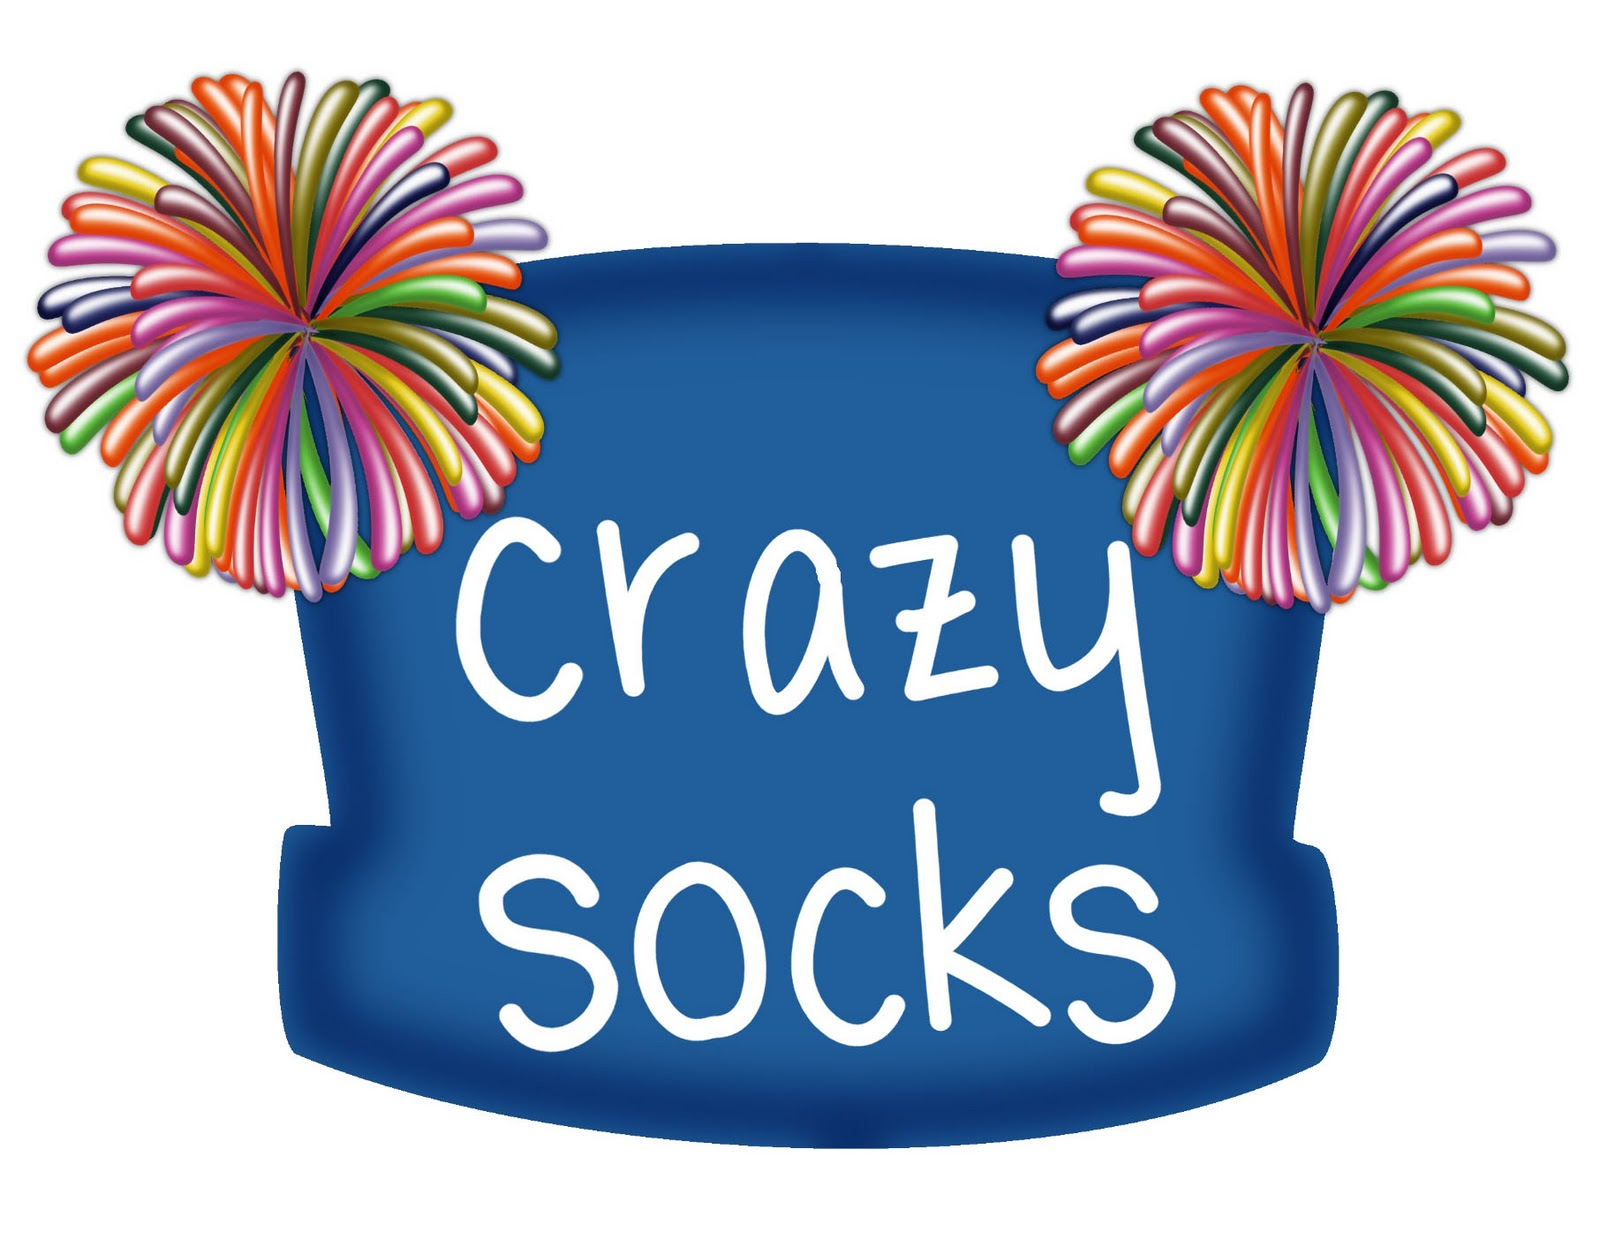 Crazy Sock Day Clip Art N3 free image.